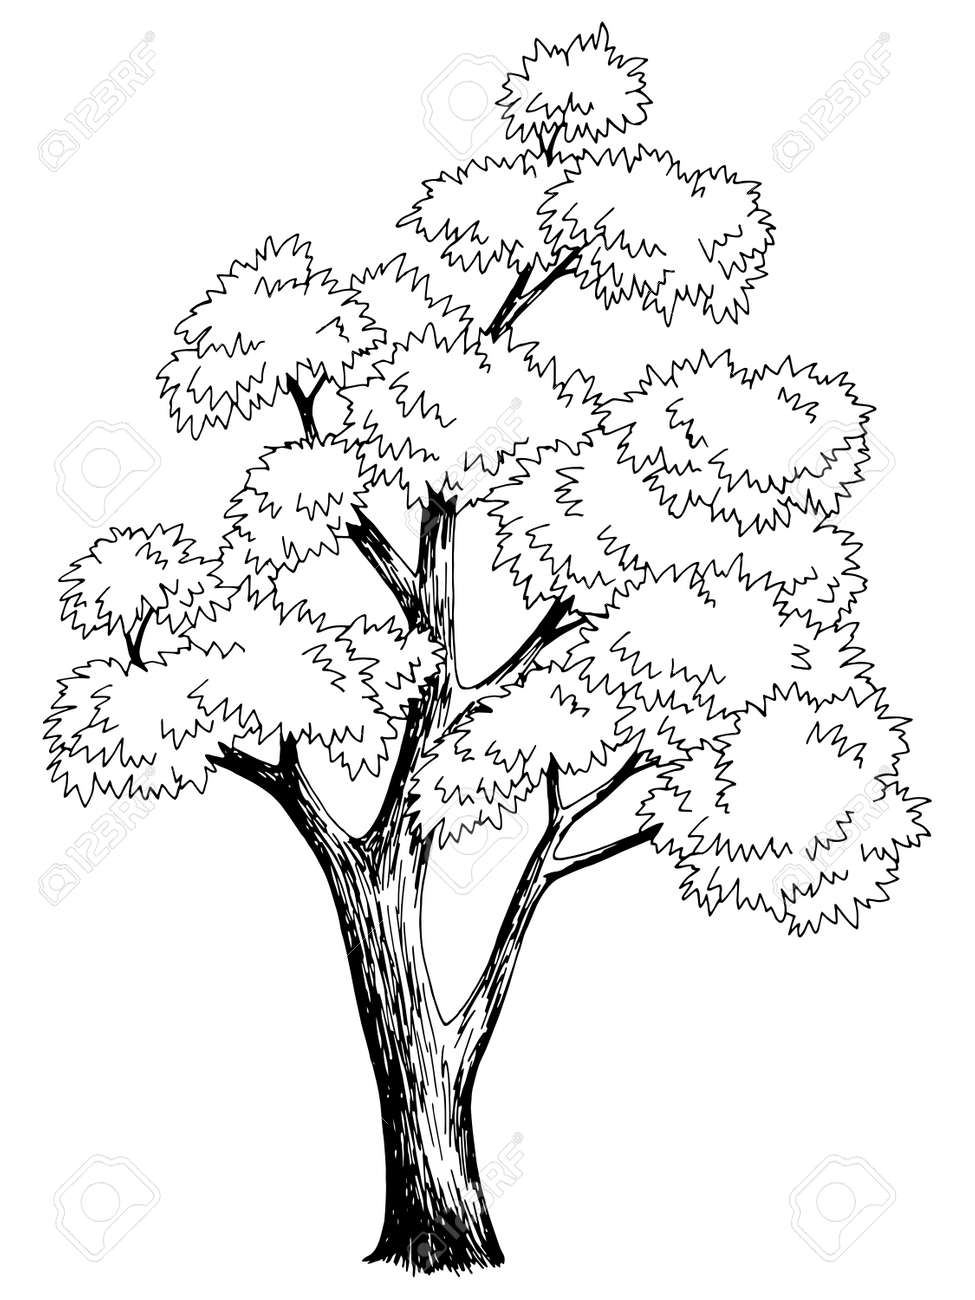 Maple tree graphic black white isolated sketch illustration vector - 155728872